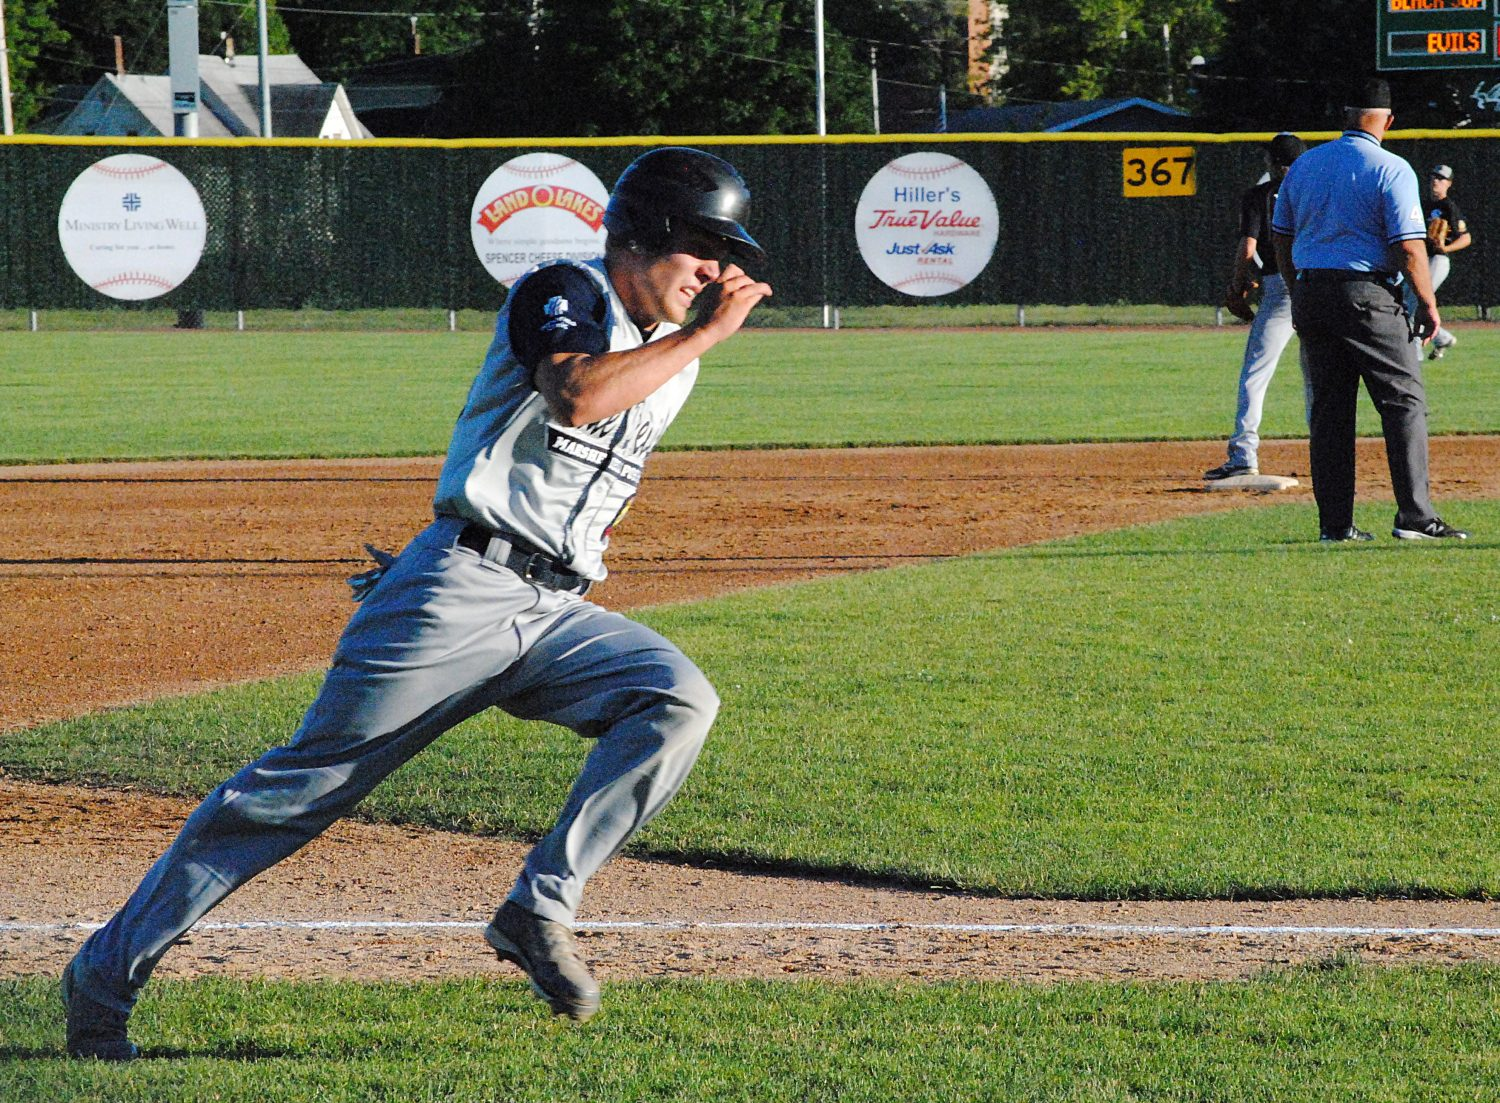 Marshfield Clinic Post 54's Braden Bohman flies around third base to score the Blue Devils' ninth run in a big first inning as they rolled past Plover 20-7 in a Legion baseball game Tuesday night at Jack Hackman Field in Marshfield.